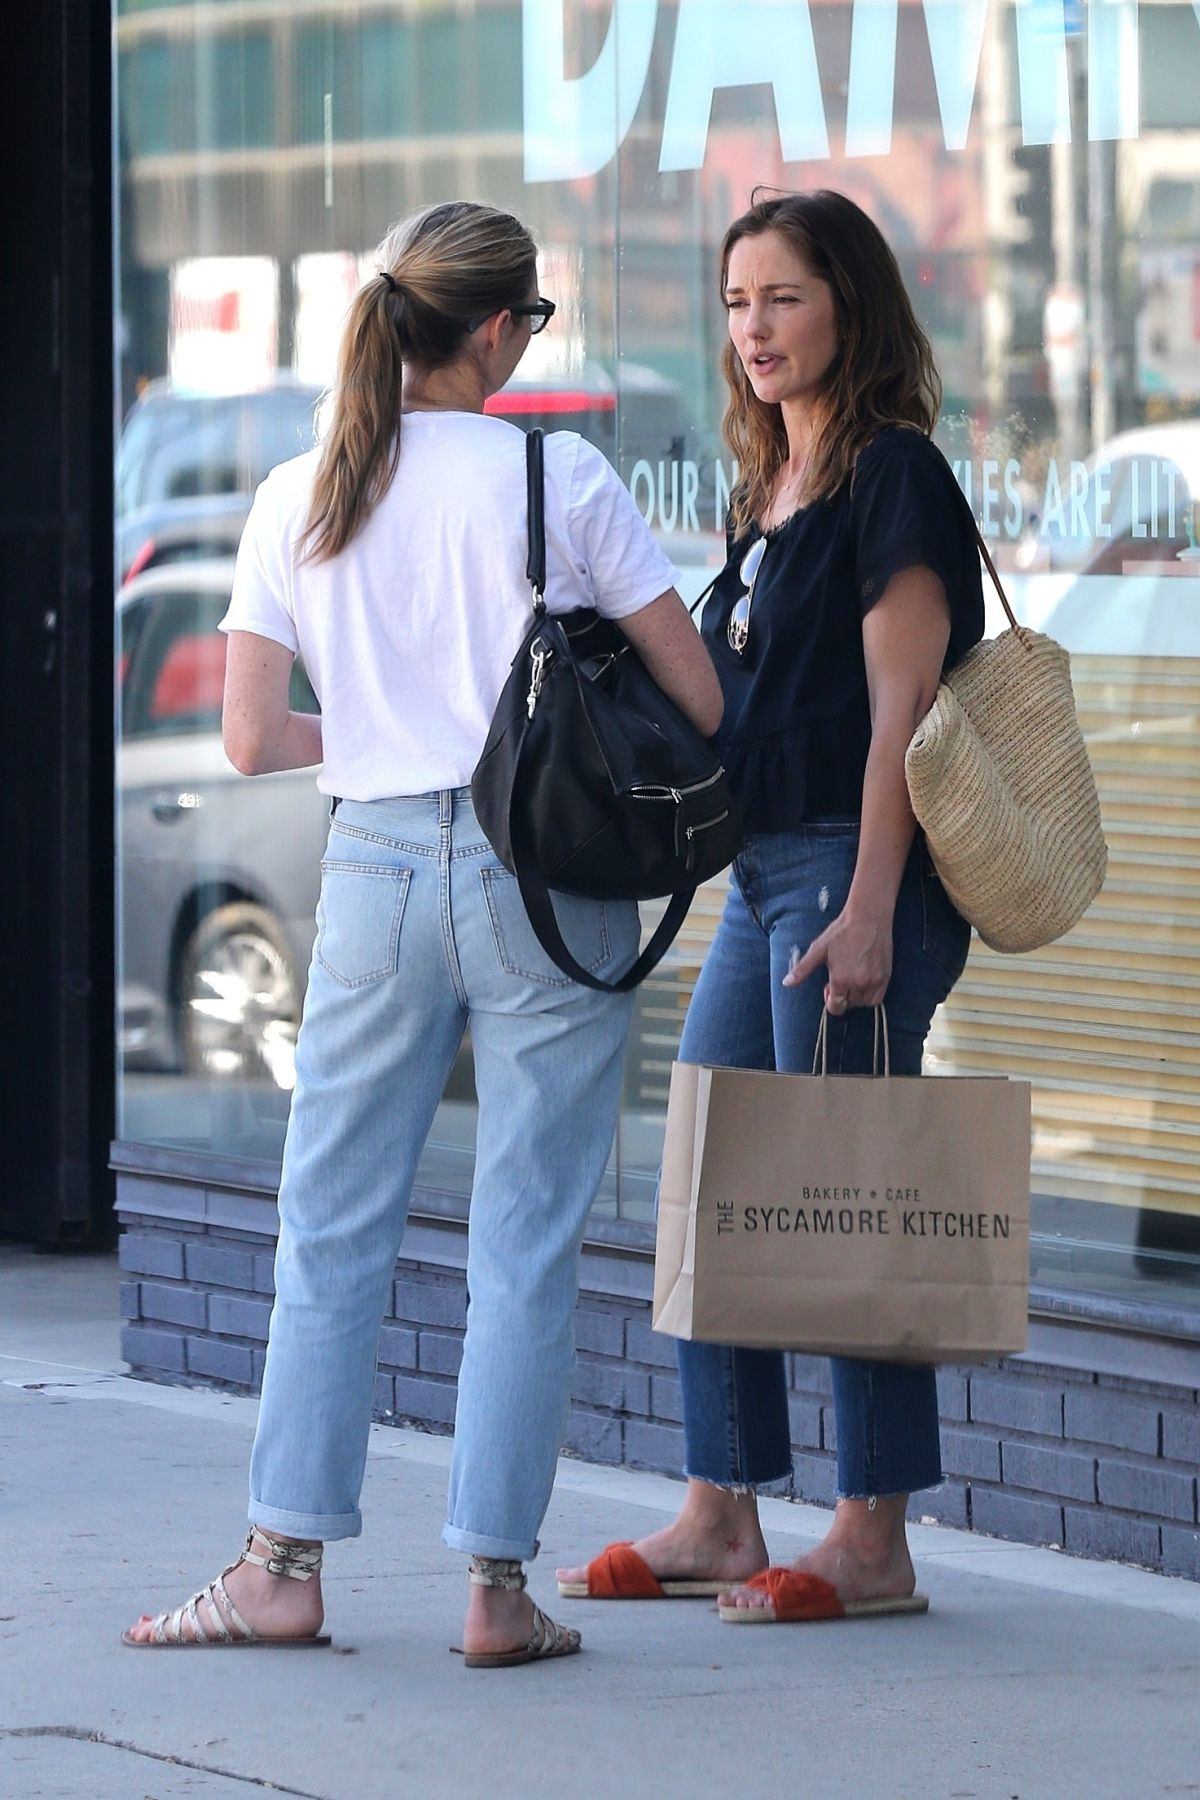 MINKA KALLEY Leaves at Sycamore Kitchen in Hollywood 08/21/2017 ...